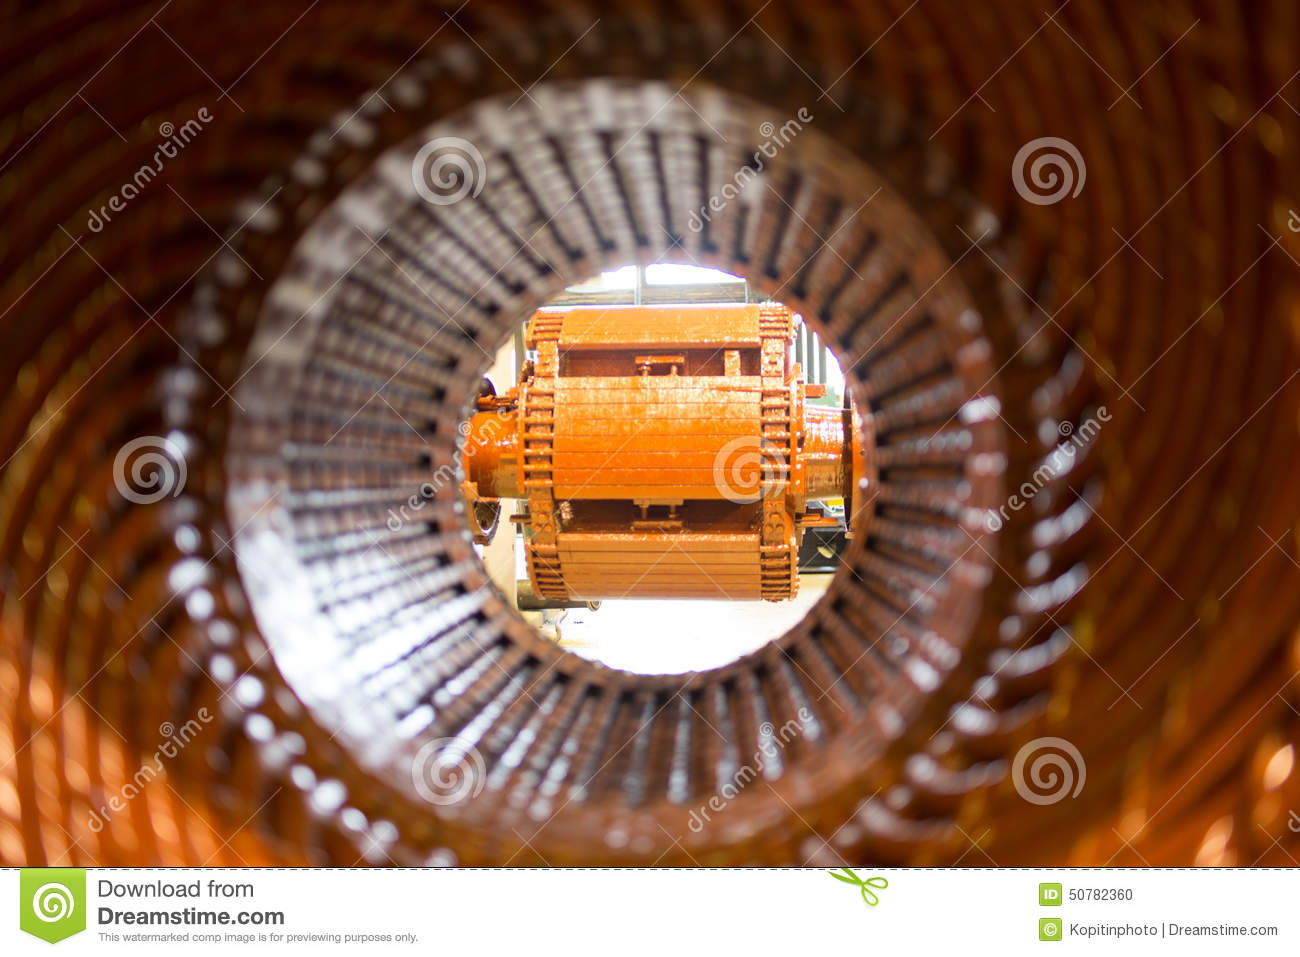 Stator Of A Big Electric Motor Stock Photo Image 50782360